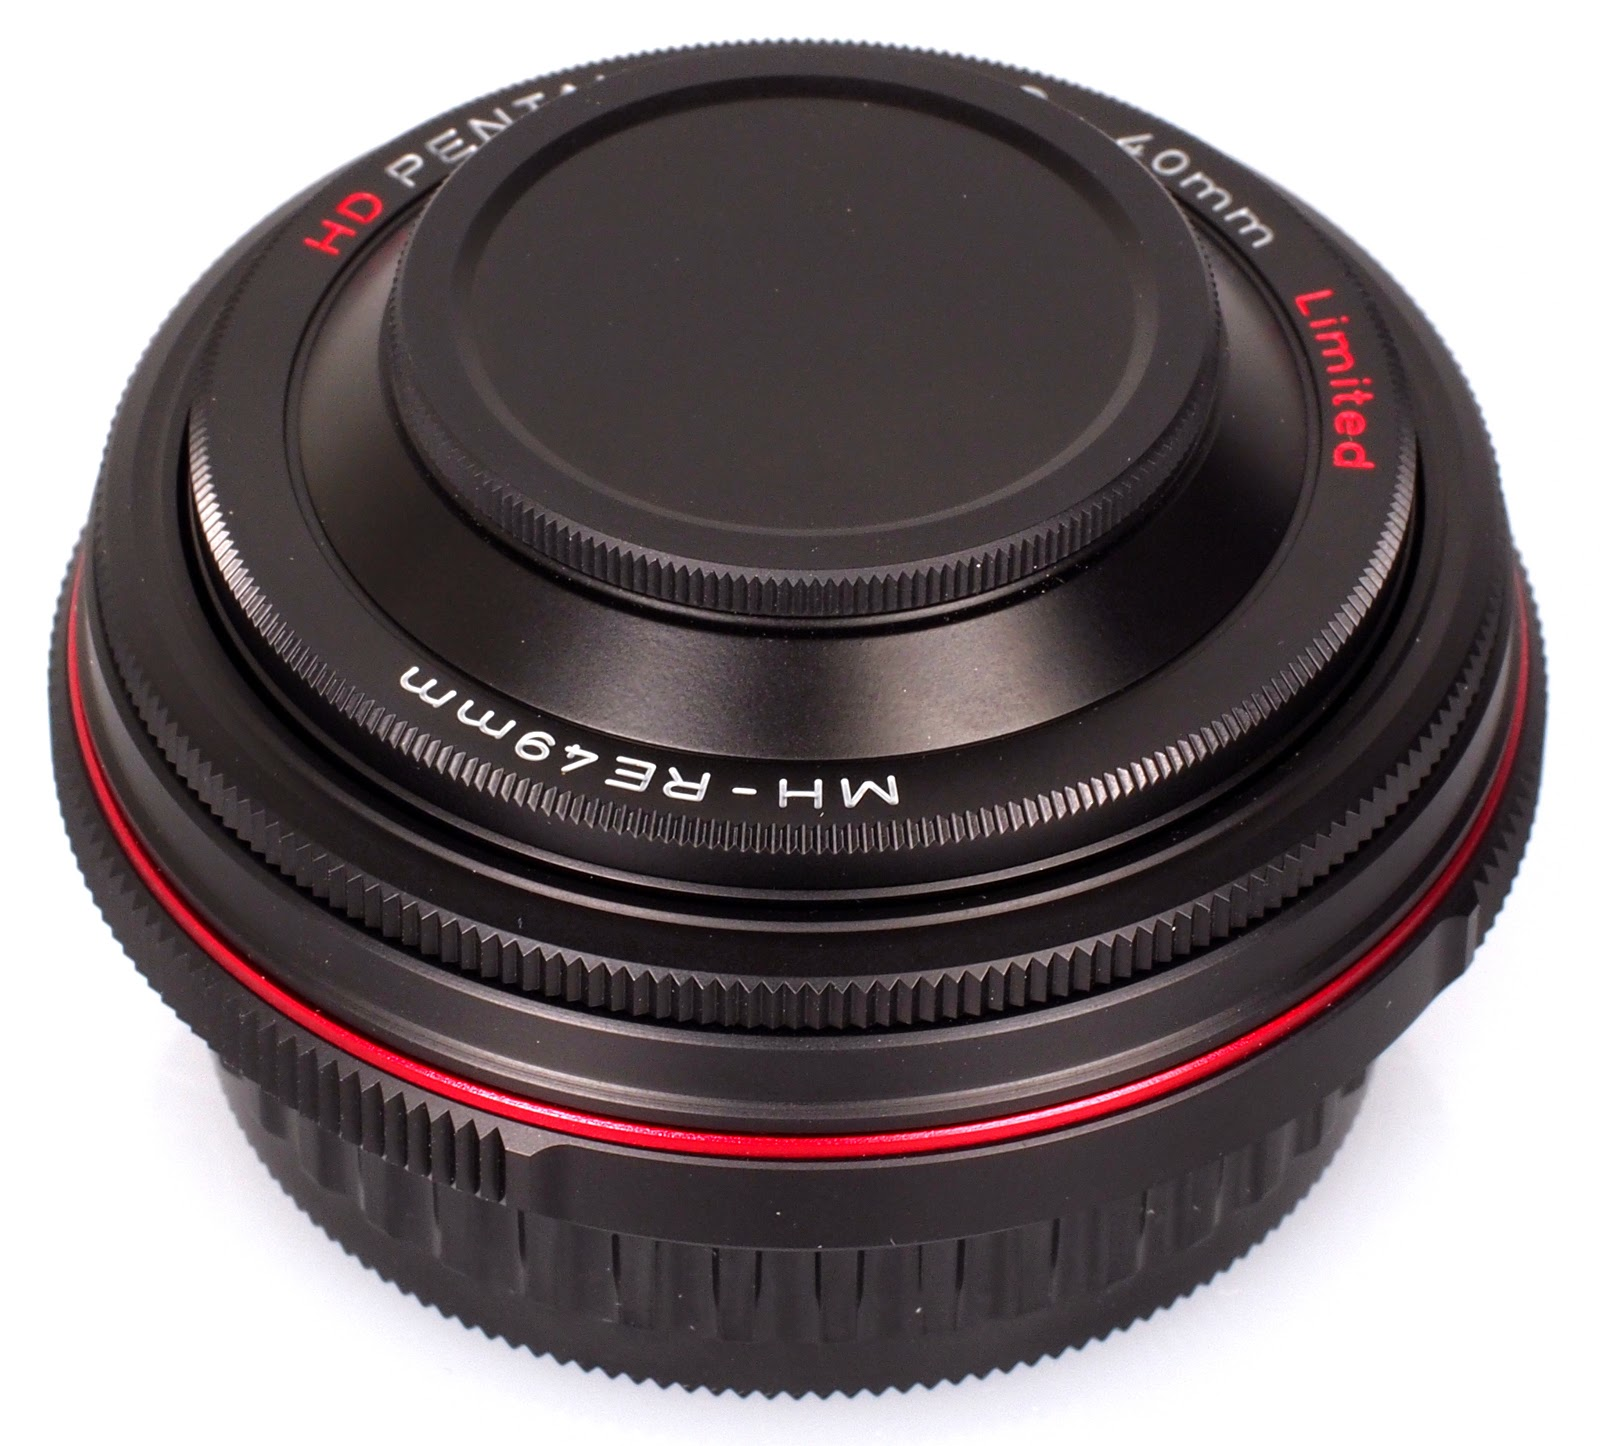 HD DA 40mm f/2.8 limited фото